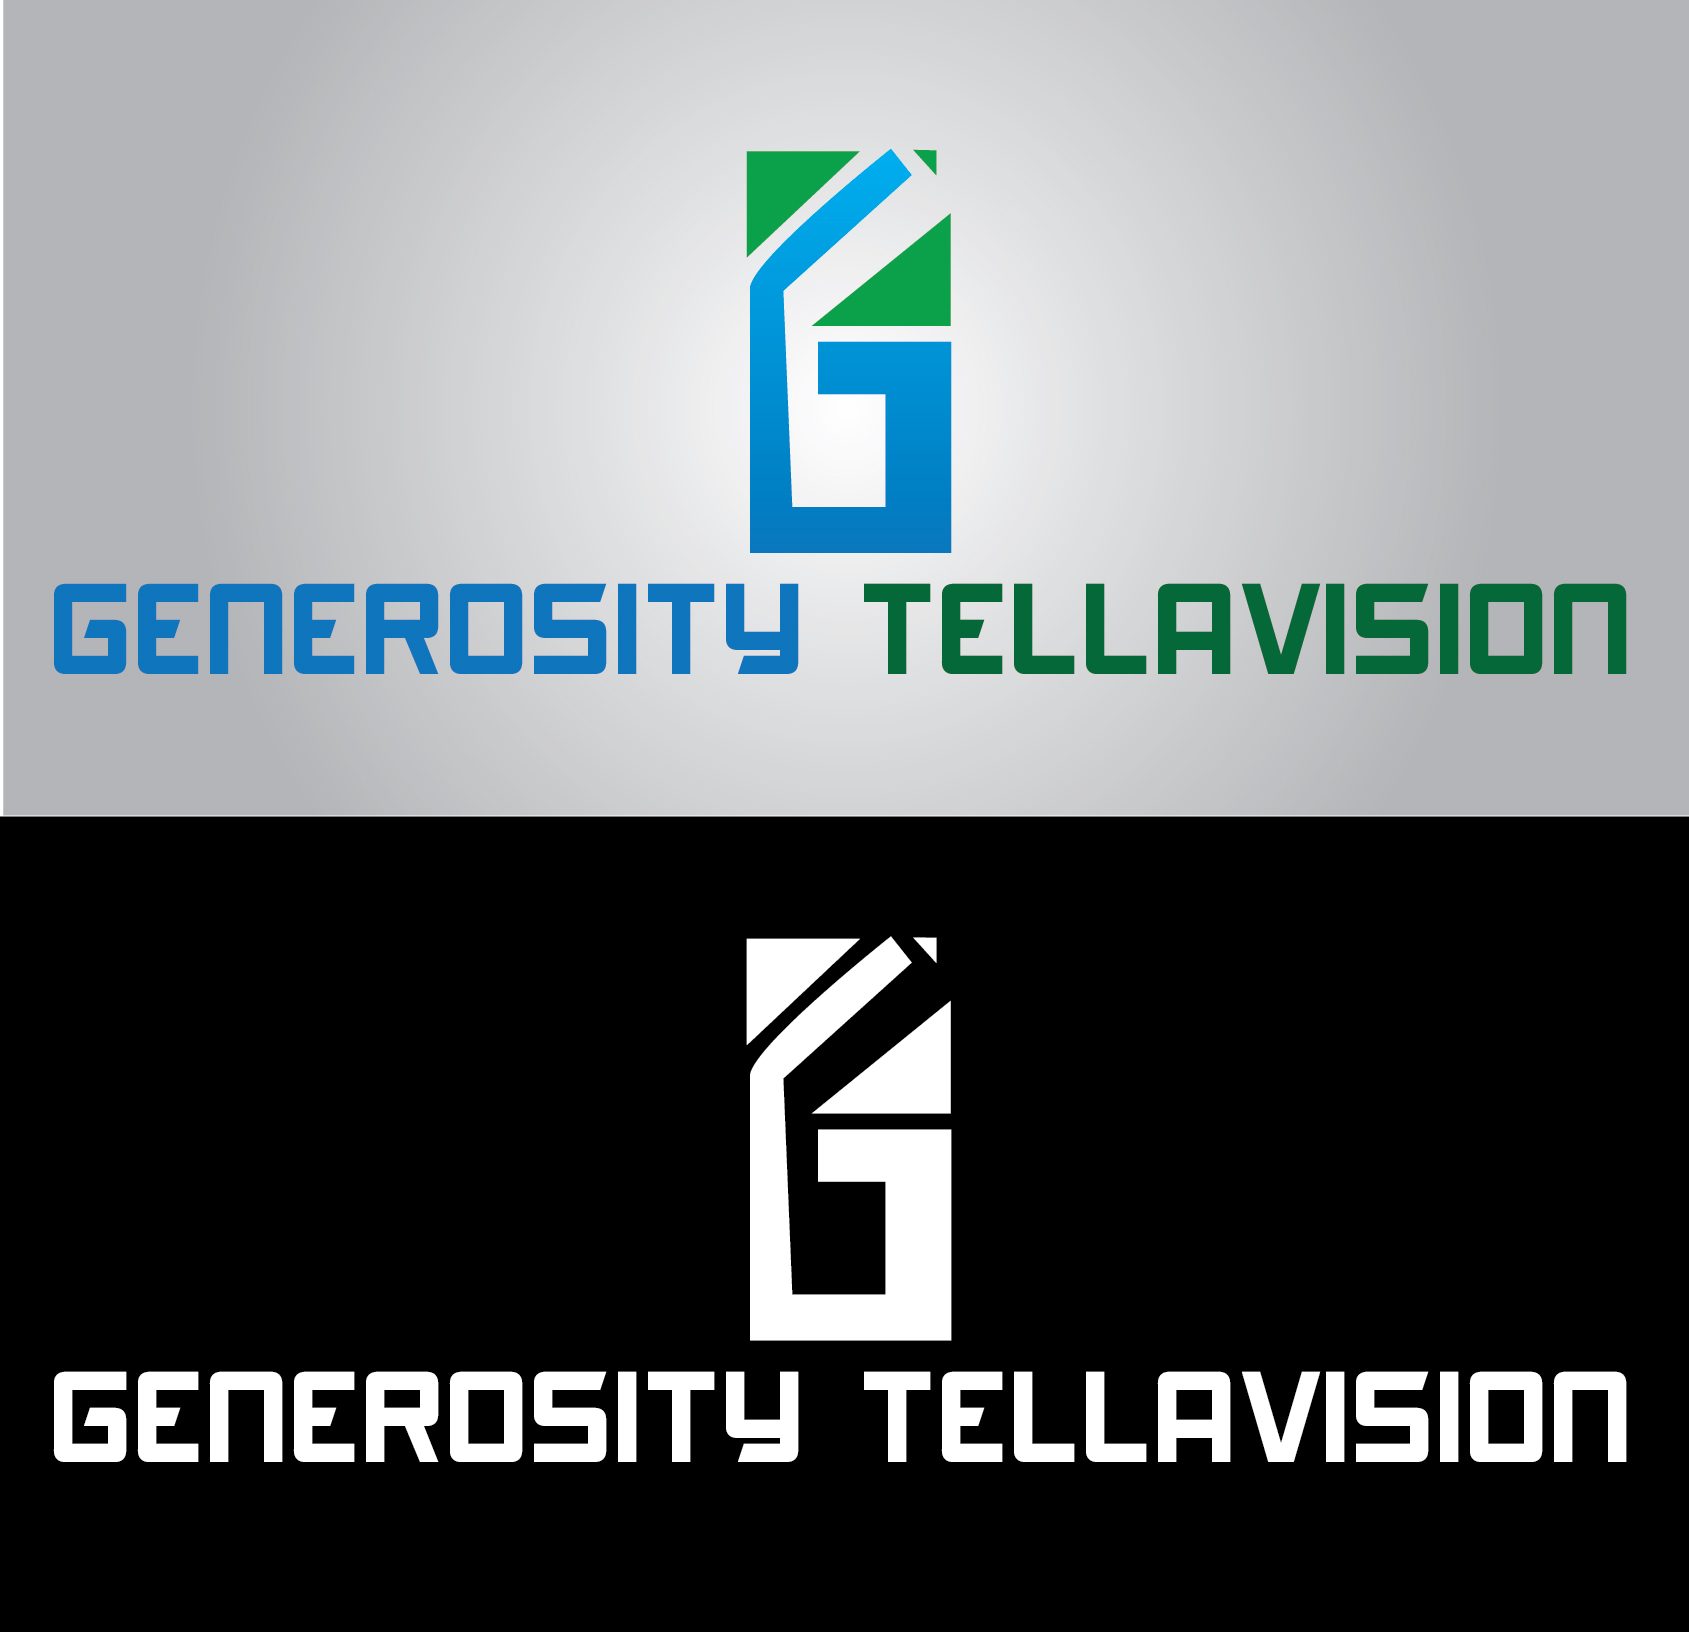 Logo Design by mediaproductionart - Entry No. 45 in the Logo Design Contest Artistic Logo Design for Generosity TellAVision.